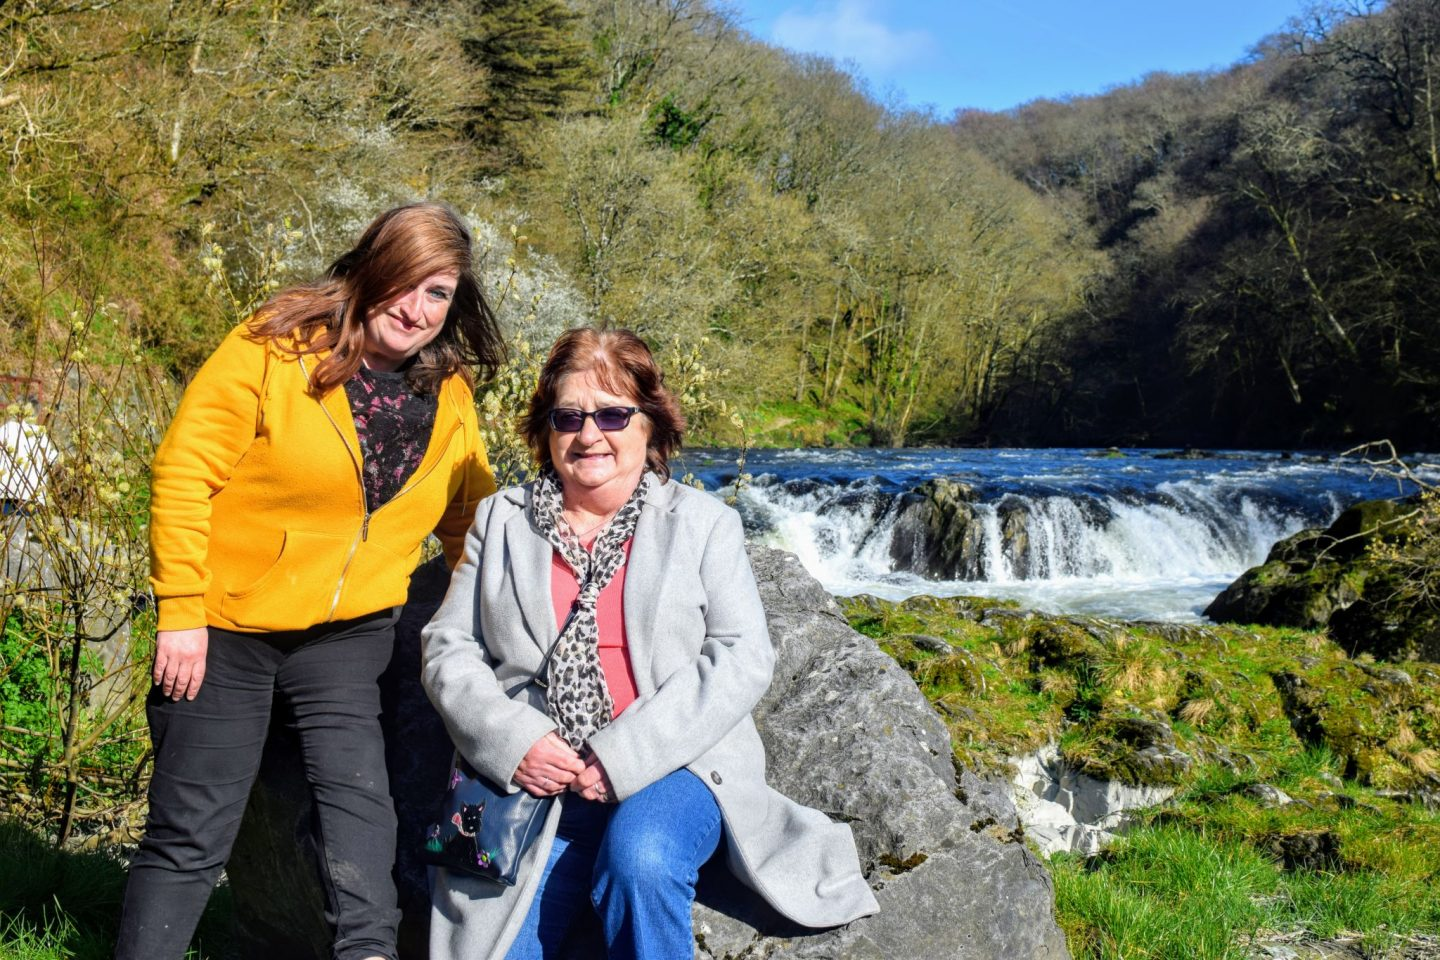 , Snapshots:  Cenarth Falls, Ceredigion, March 2019